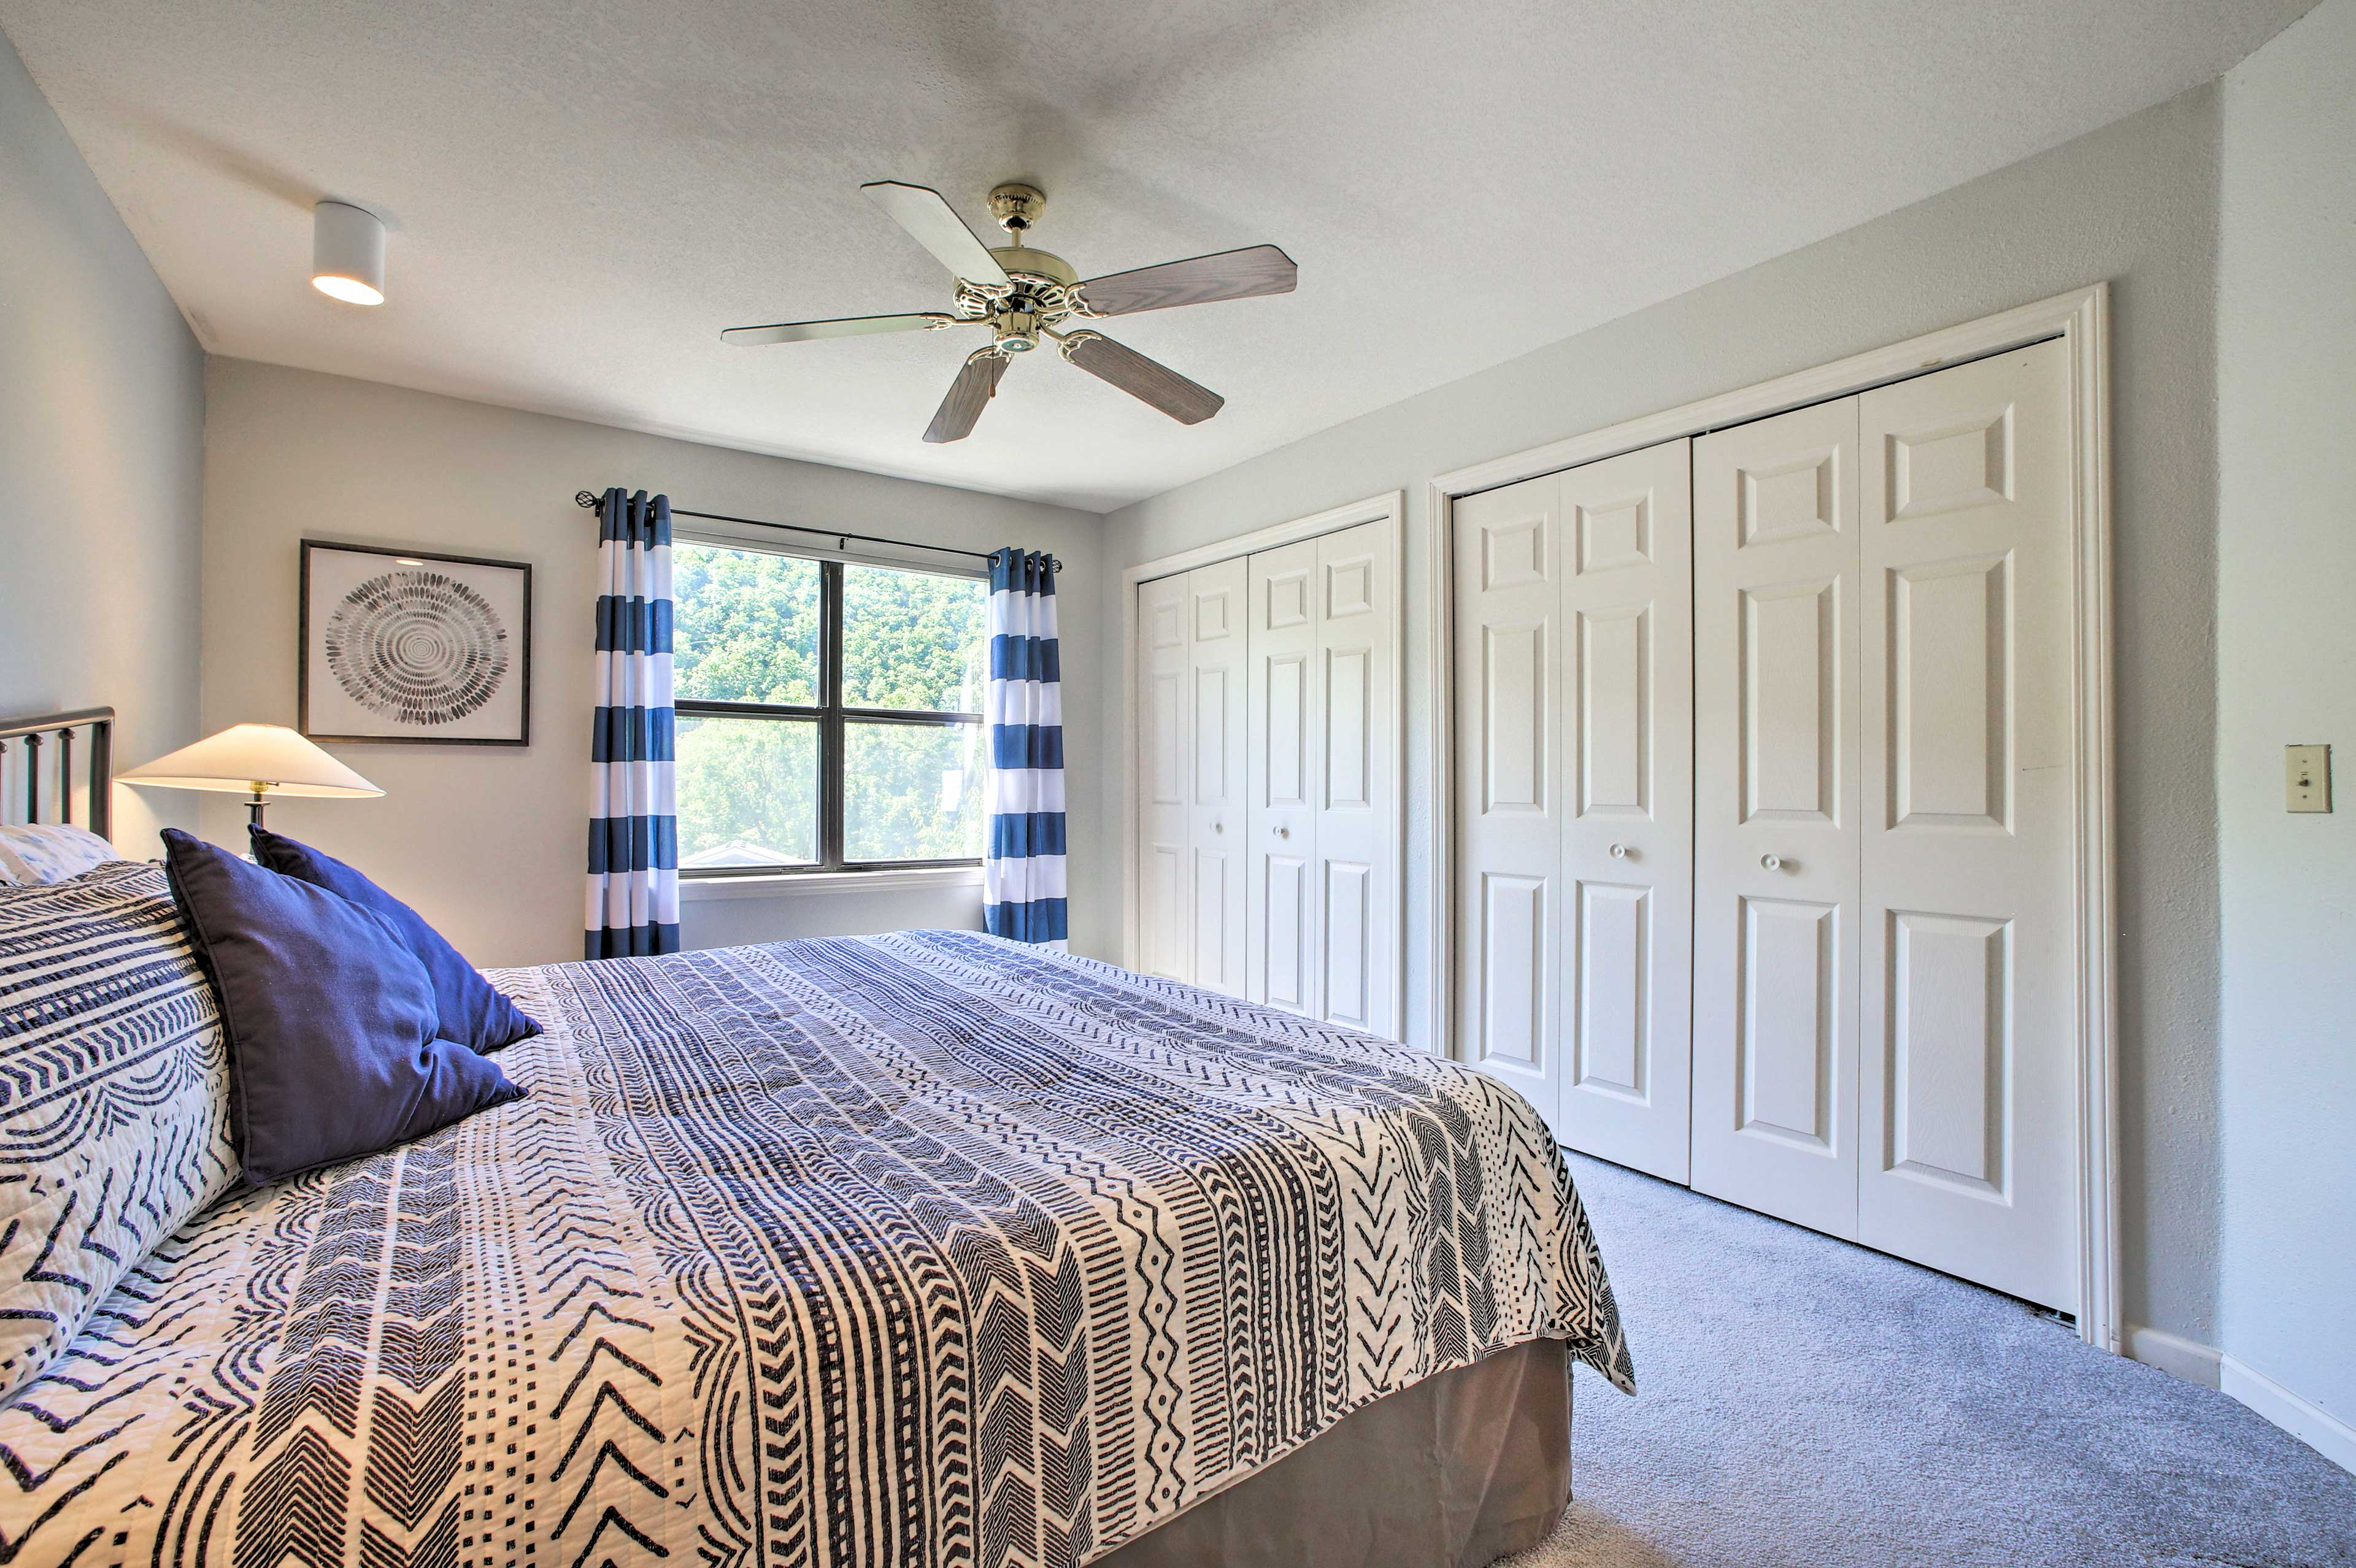 Drift off to dreamland in this spacious bedroom with a queen bed.